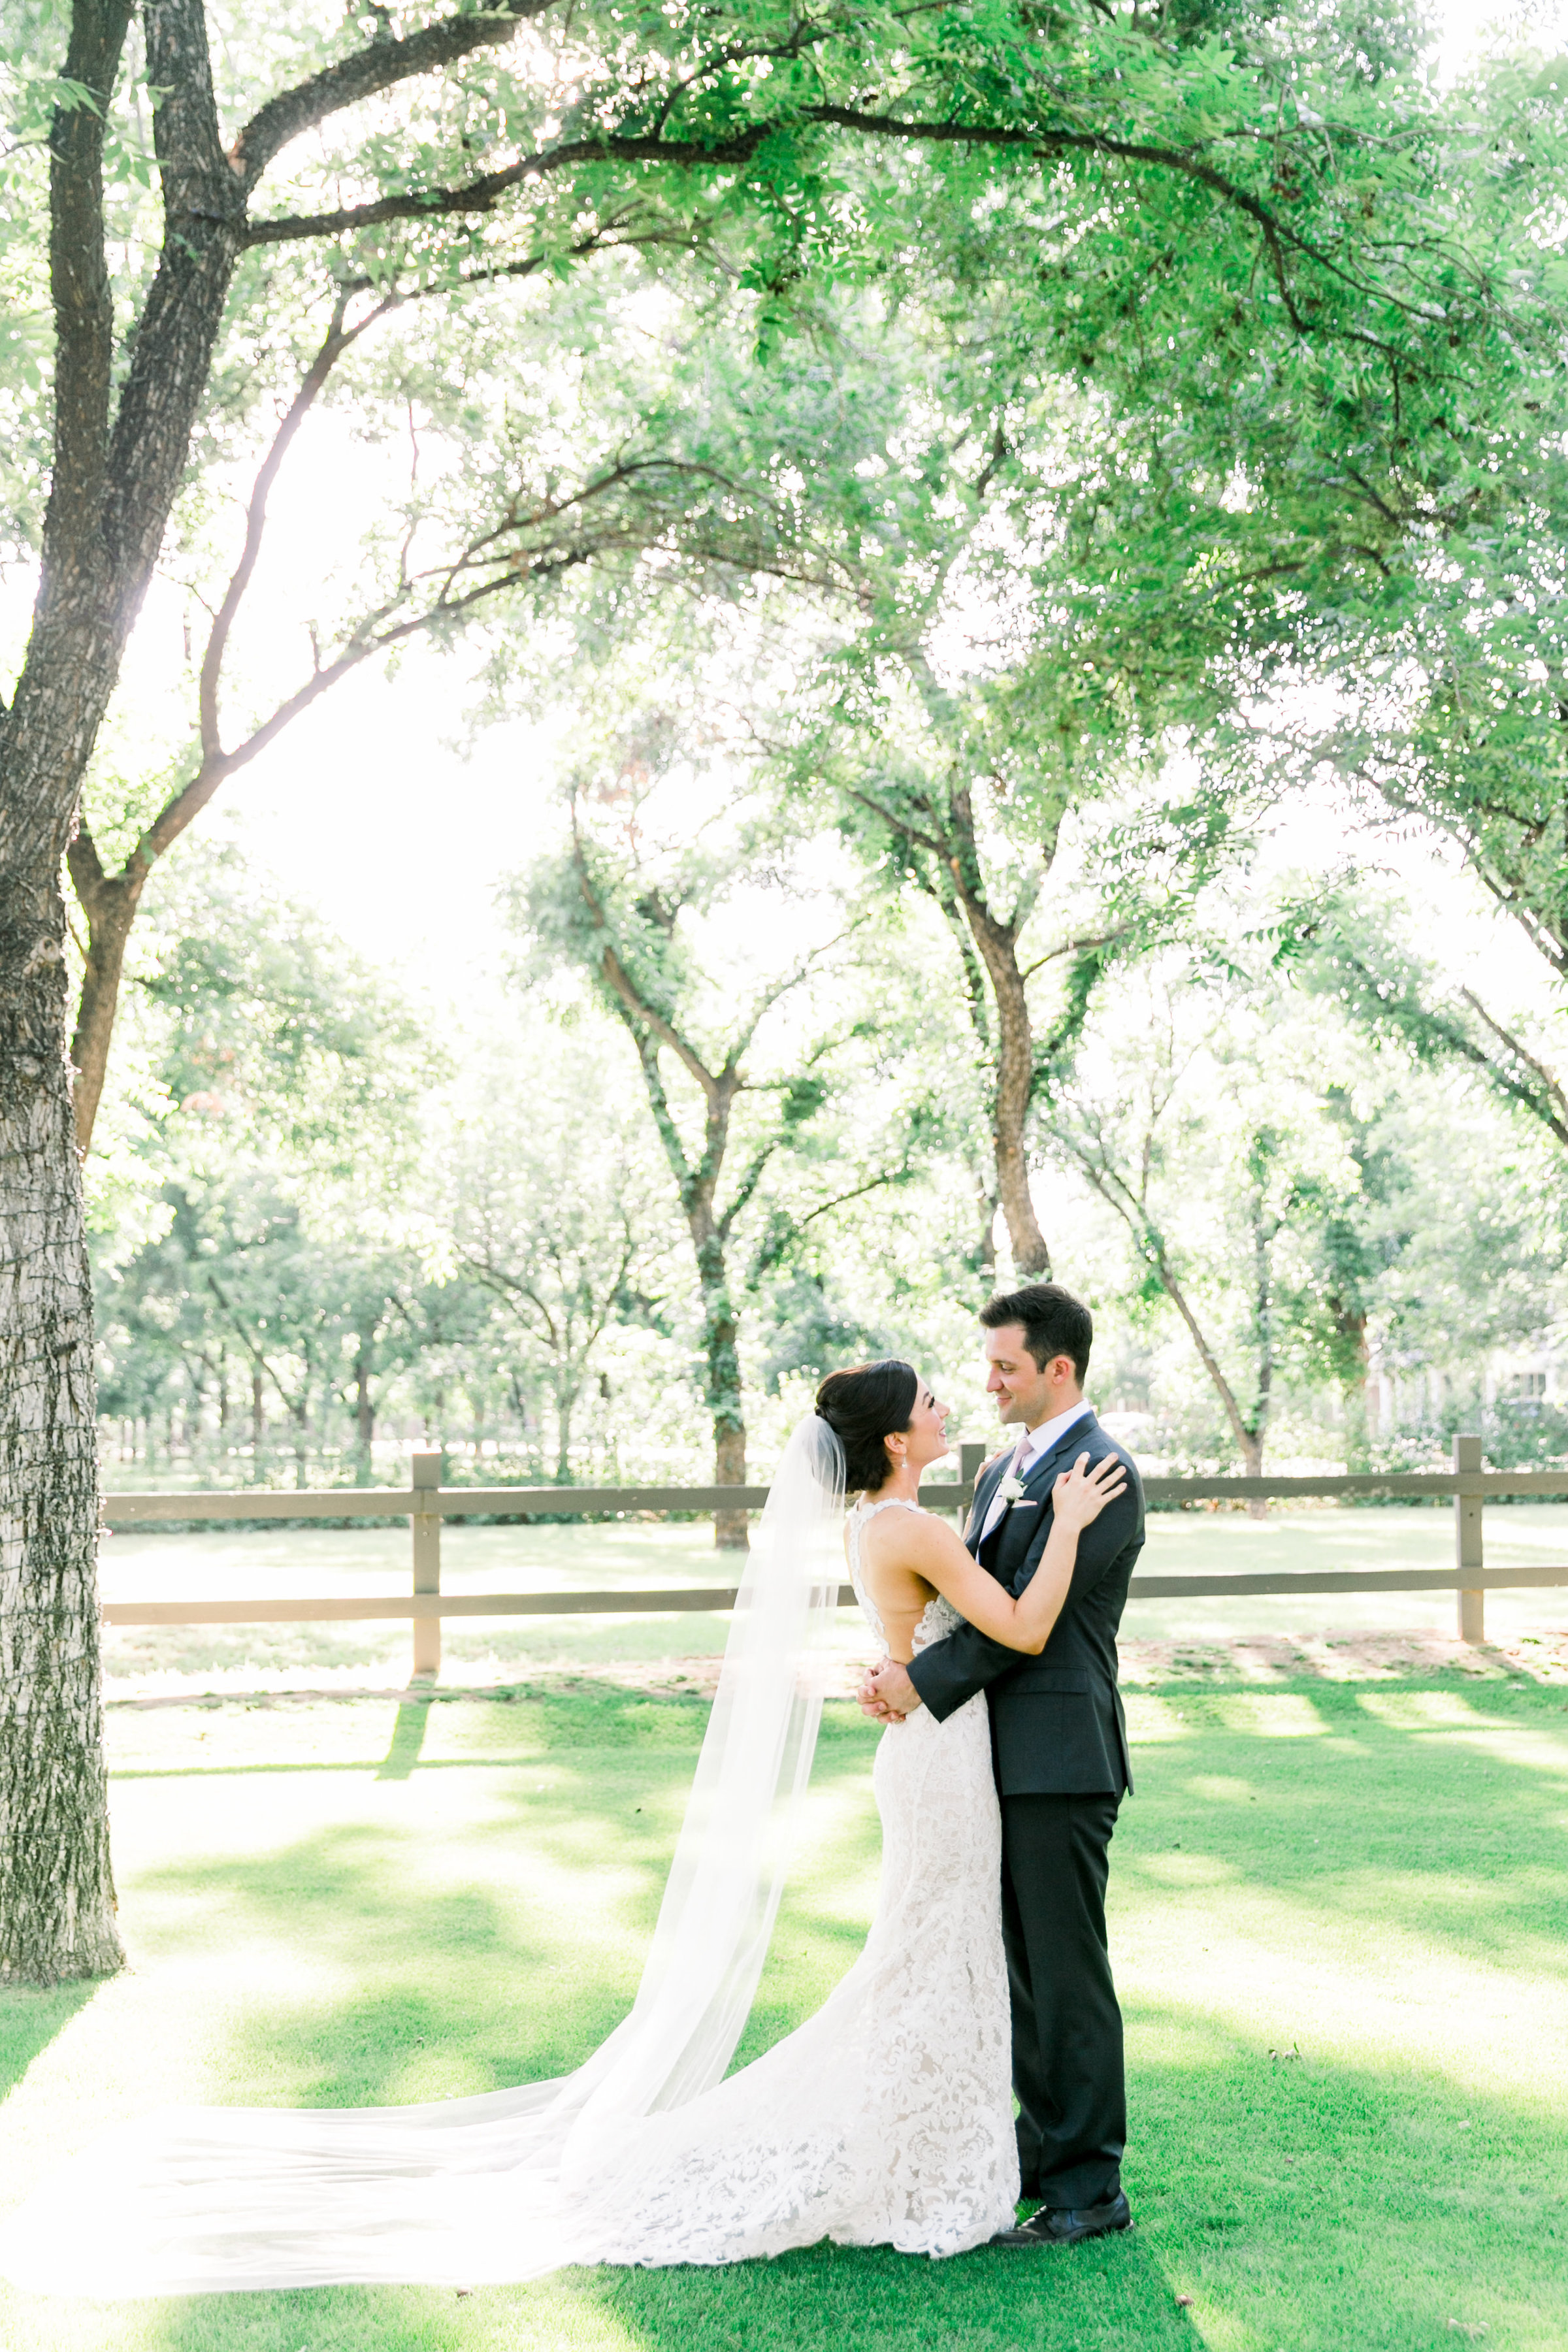 Karlie Colleen Photography - Venue At The Grove - Arizona Wedding - Maggie & Grant -56